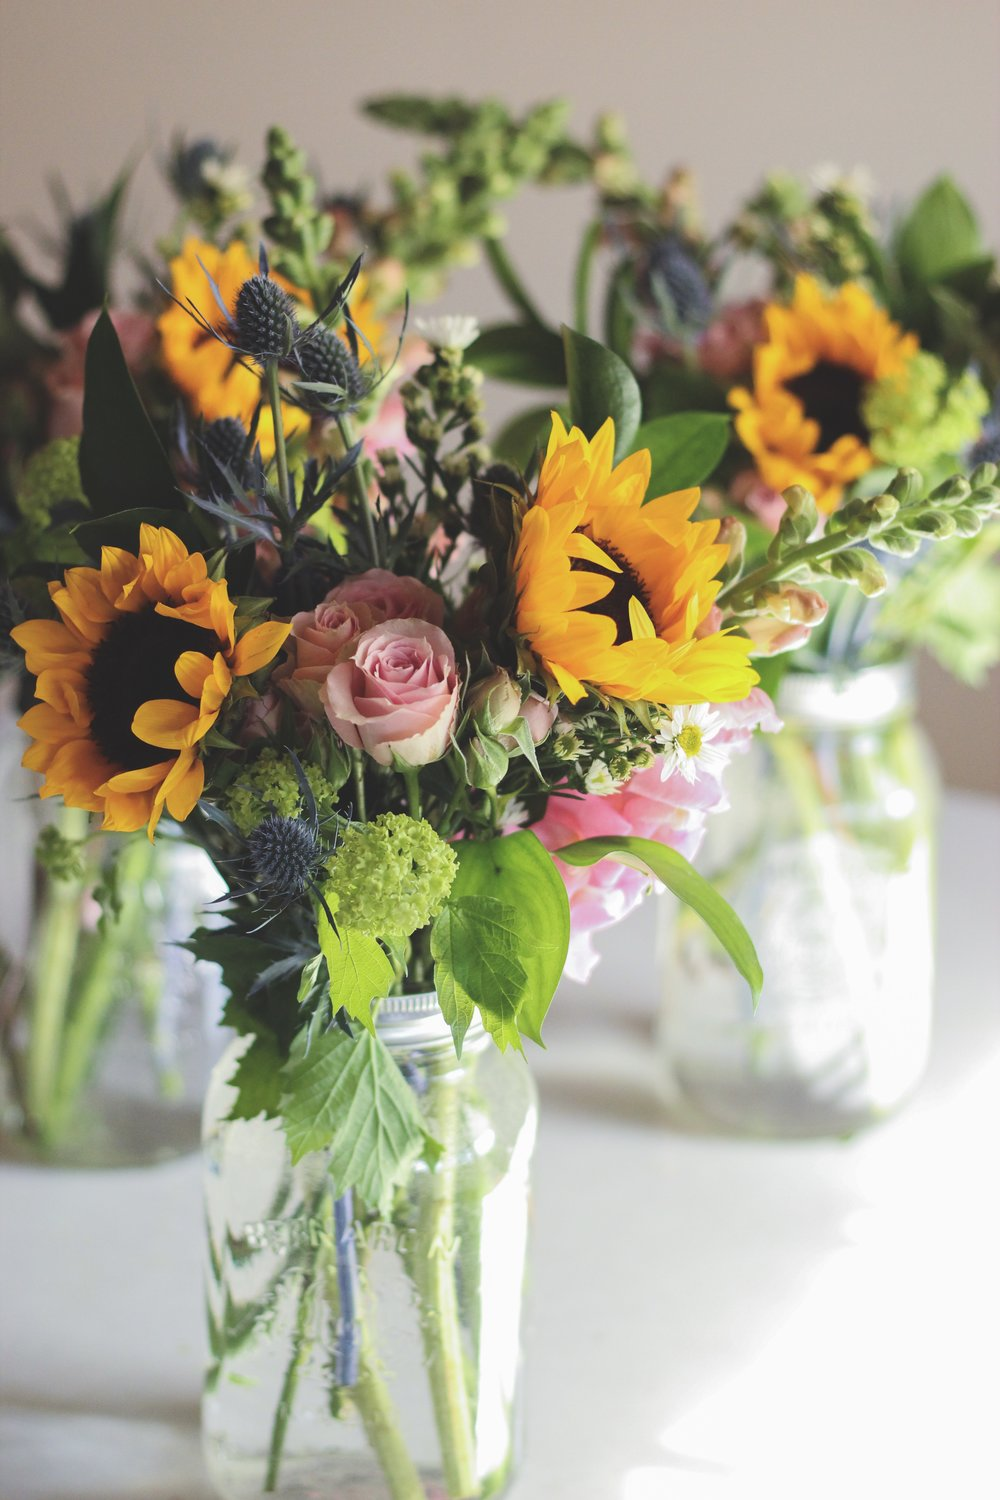 Sunflowers blue thistle and pink roses mason jar flower arrangement – Roots and Wildflowers